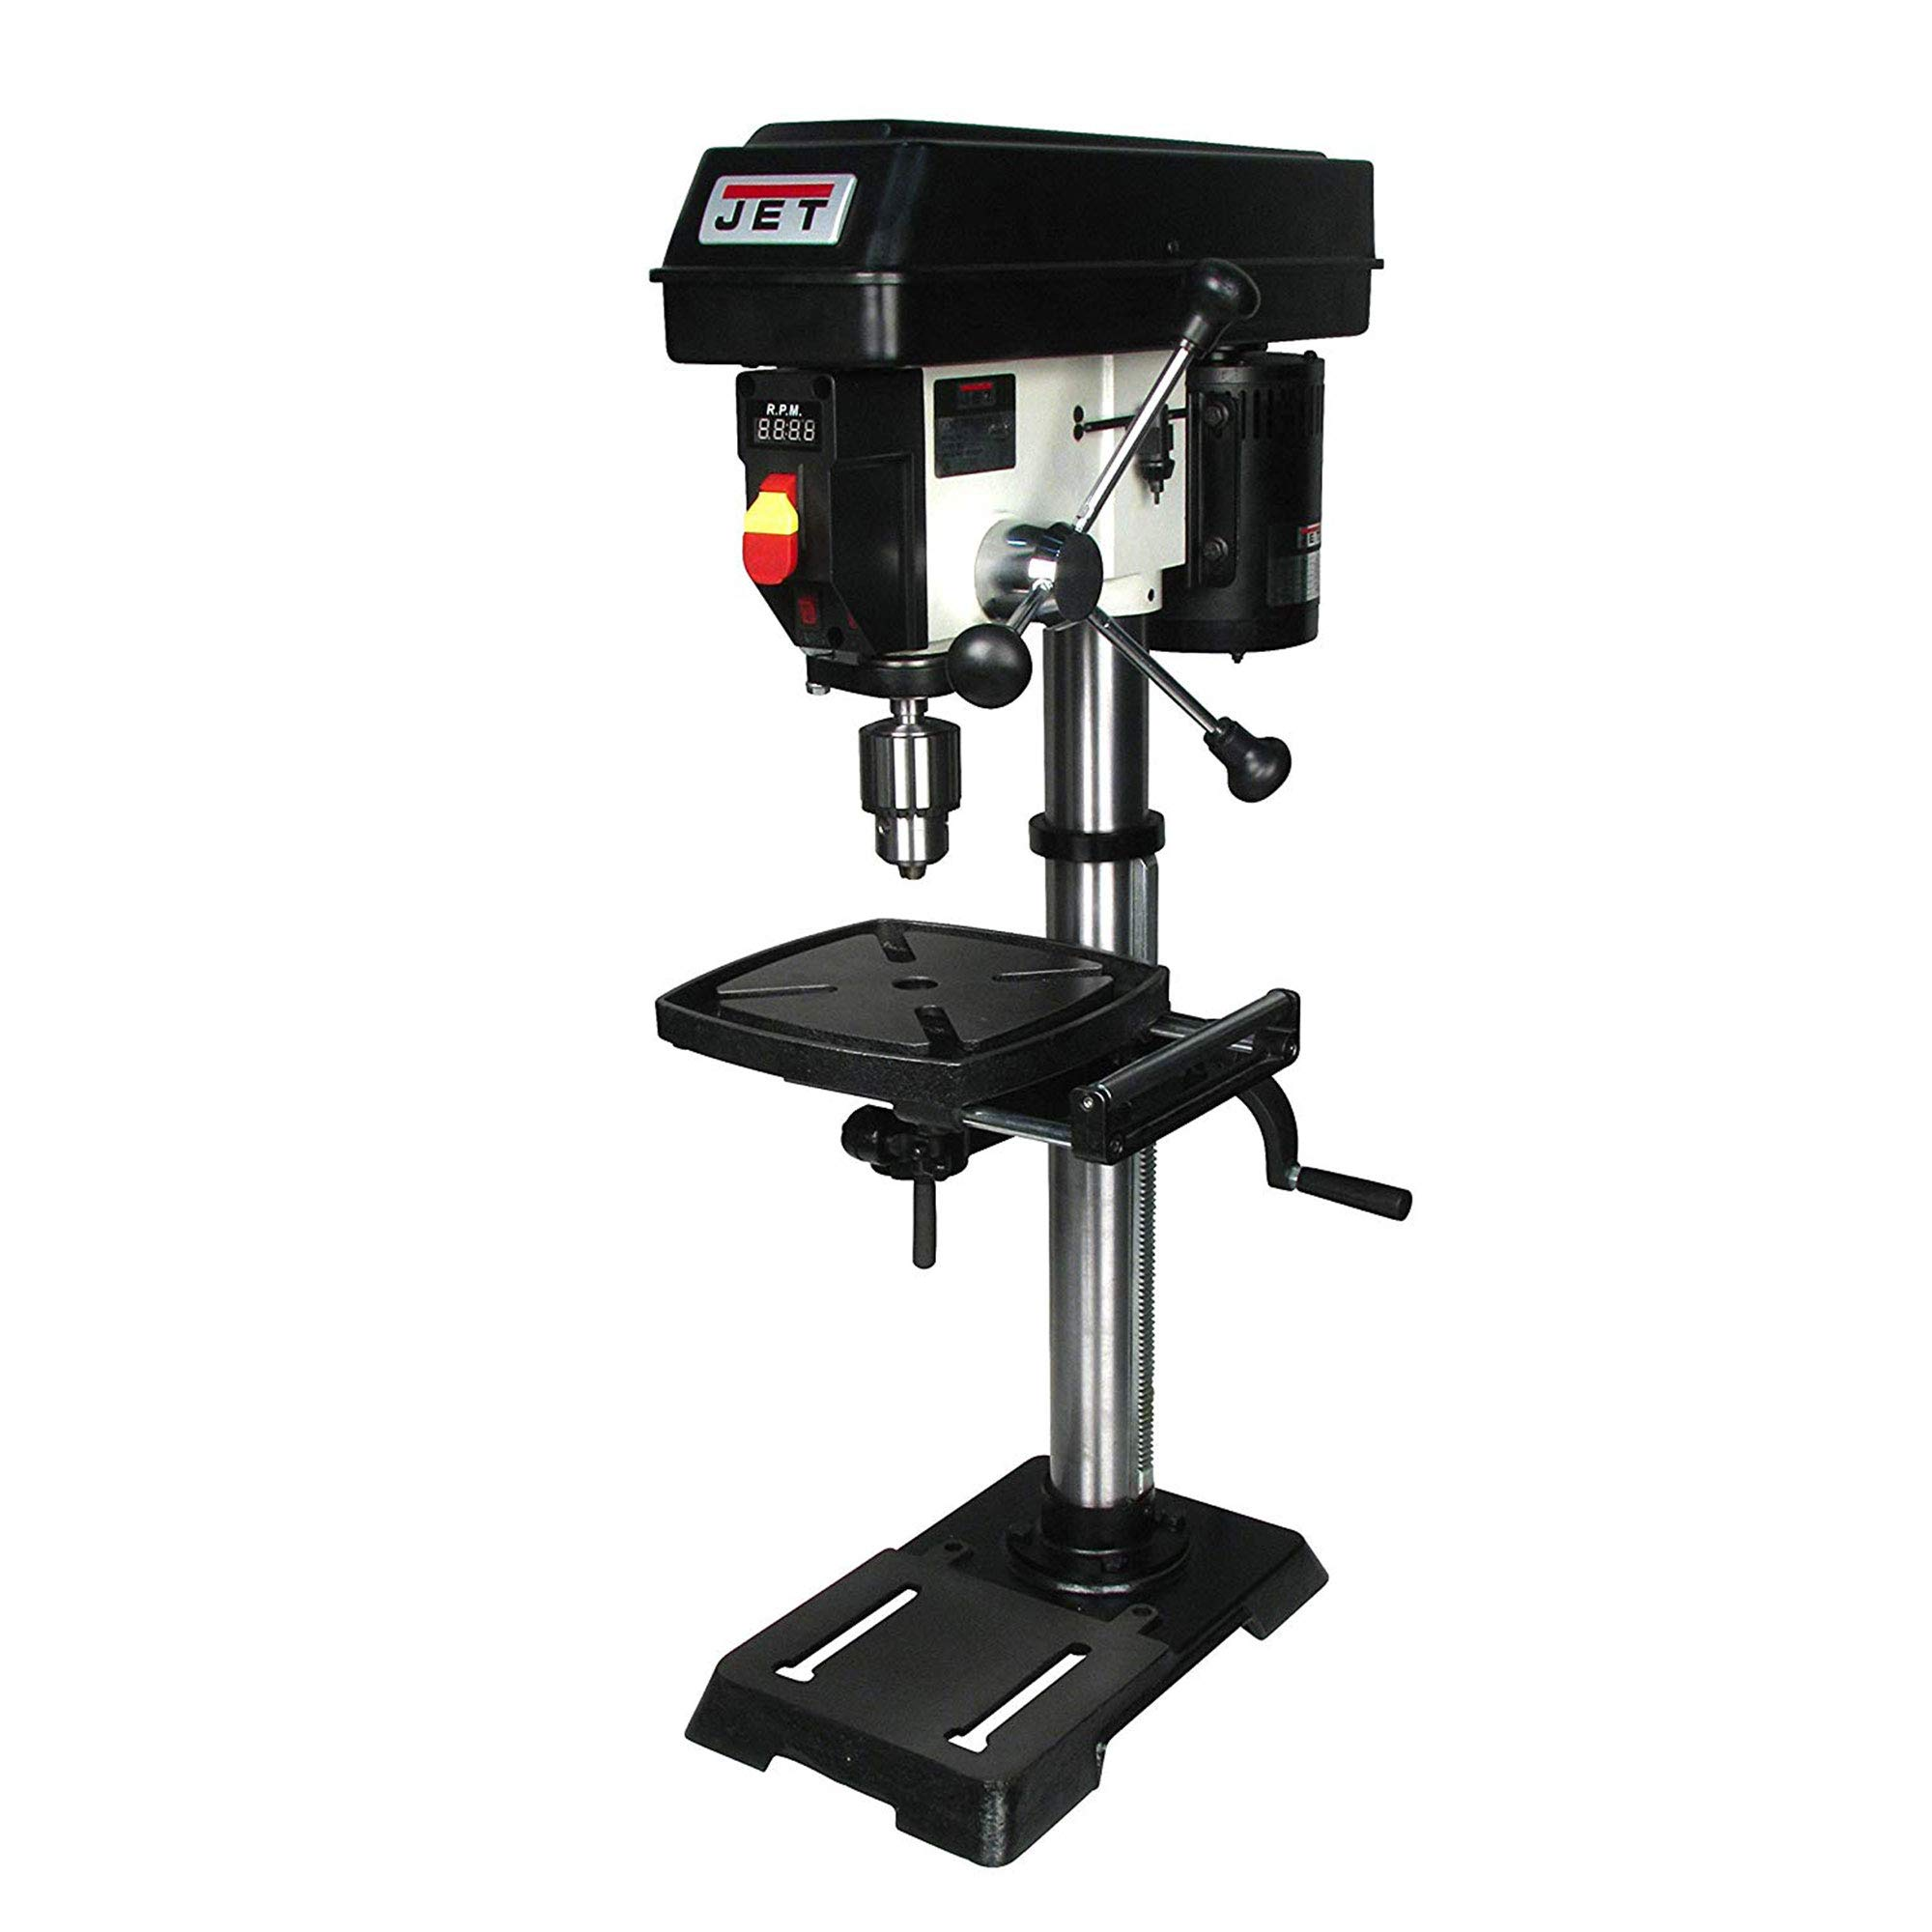 Jet 716000 JWDP-12 Drill Press by Jet